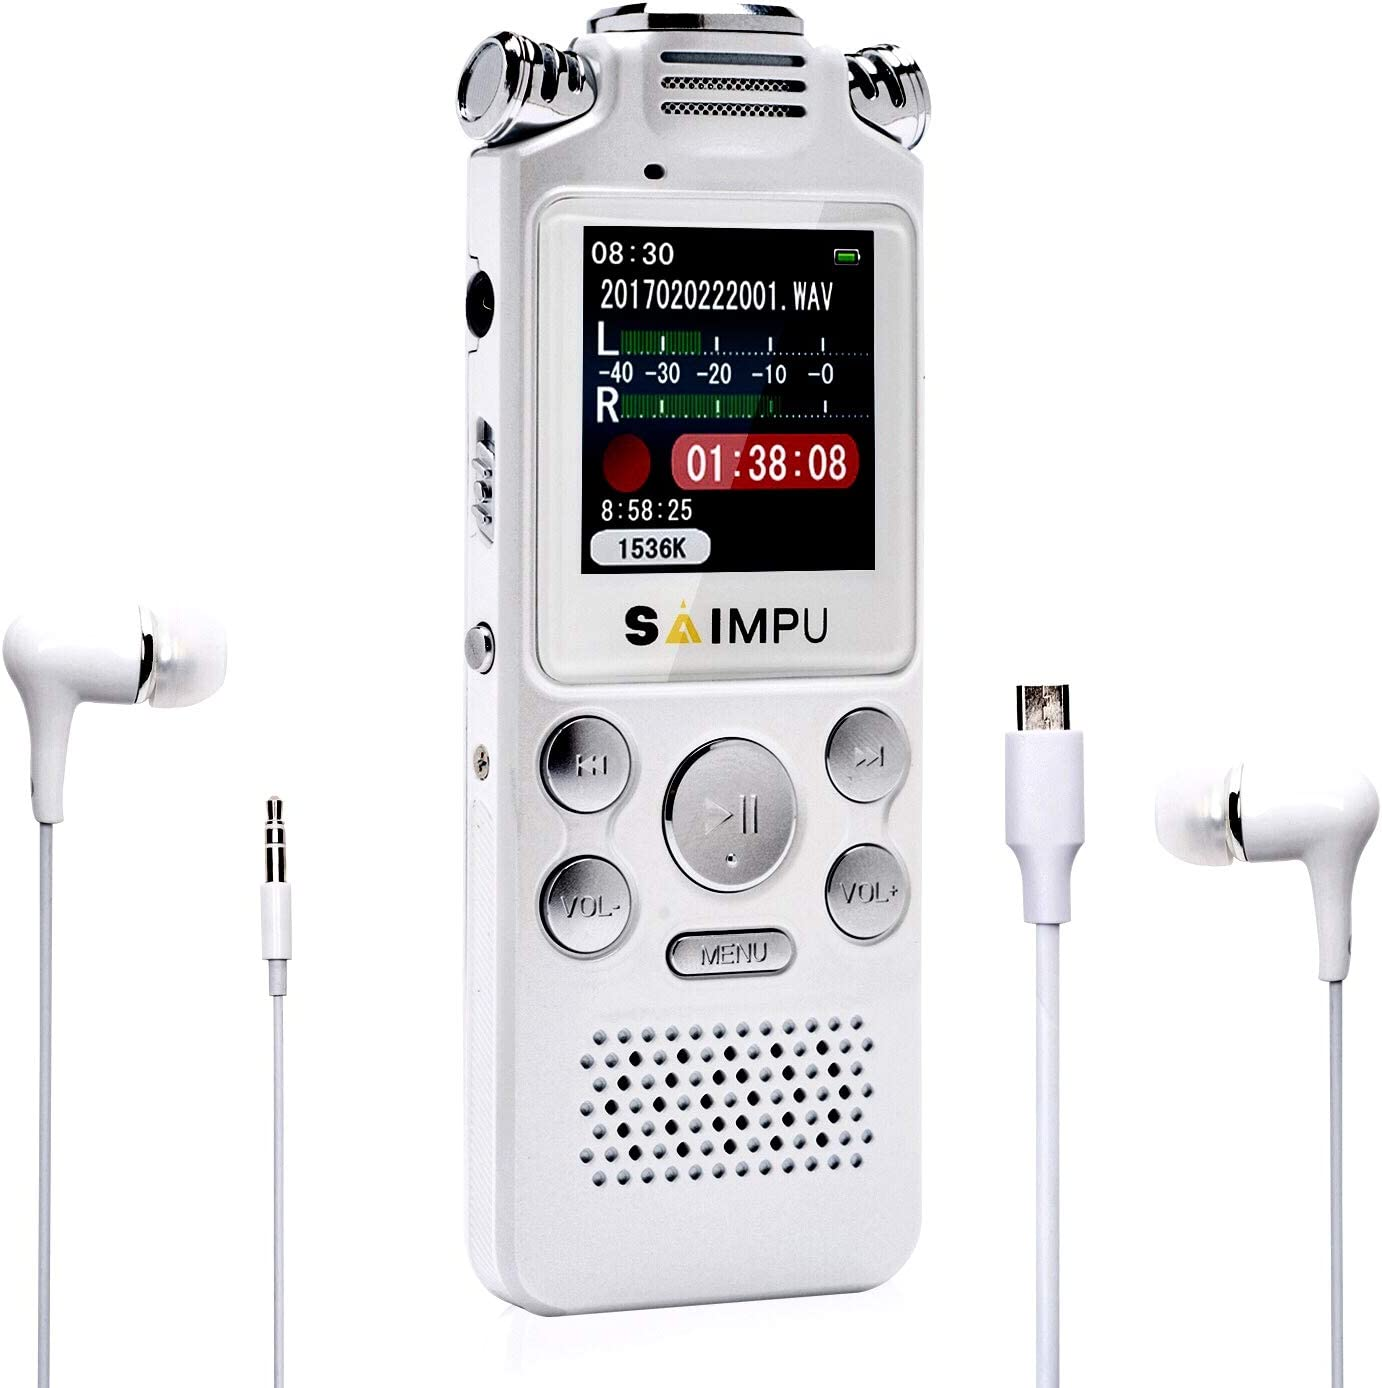 Voice Recorder-16GB Activated Recorder Speed Max 72% OFF Some reservation Variable with